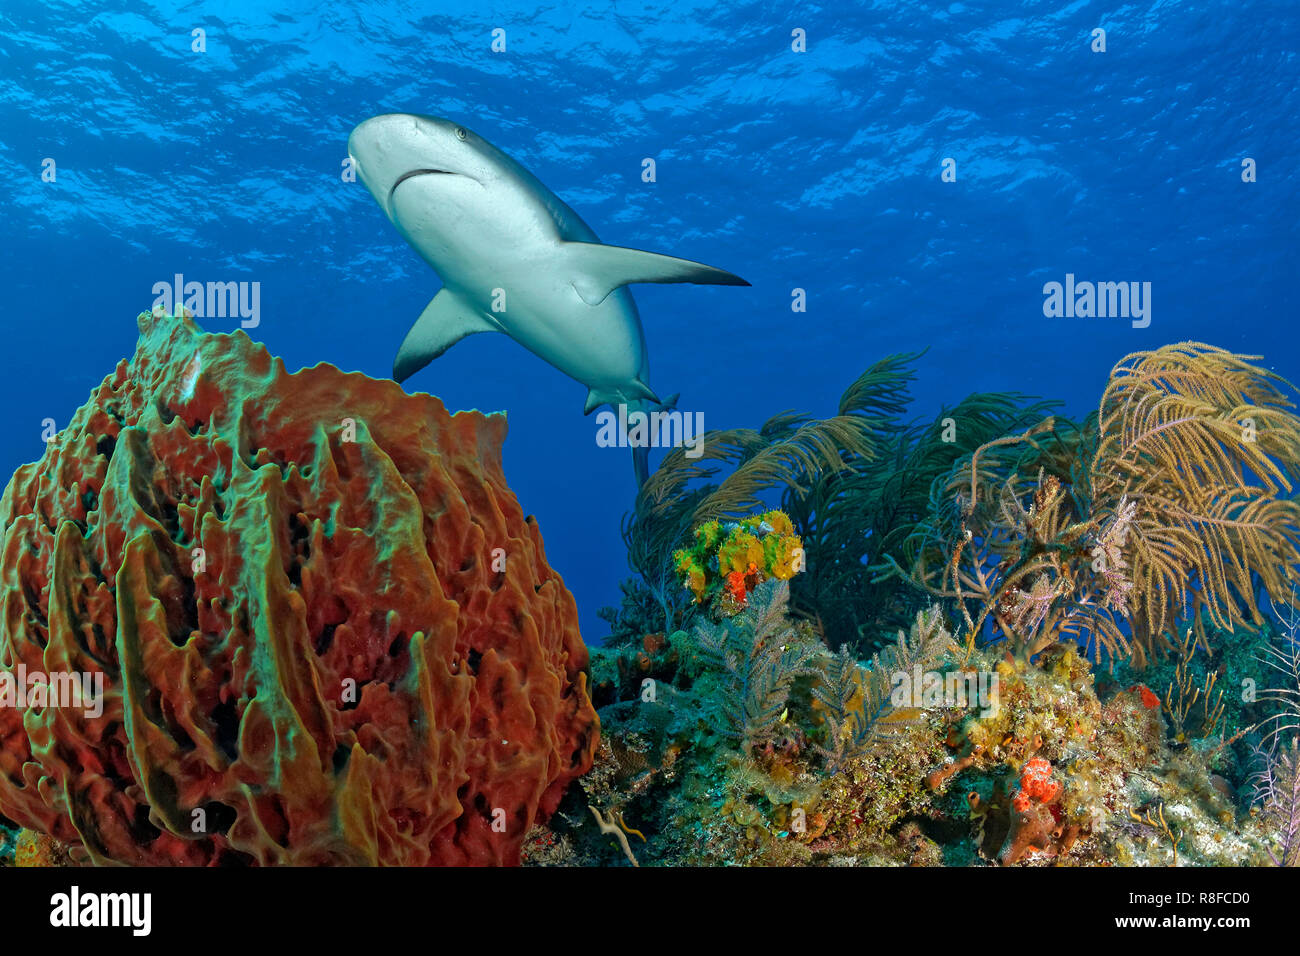 Caribbean Reef Shark (Carcharhinus perezi) swimming over a colourful coral reef, Grand Bahama, Bahamas Stock Photo